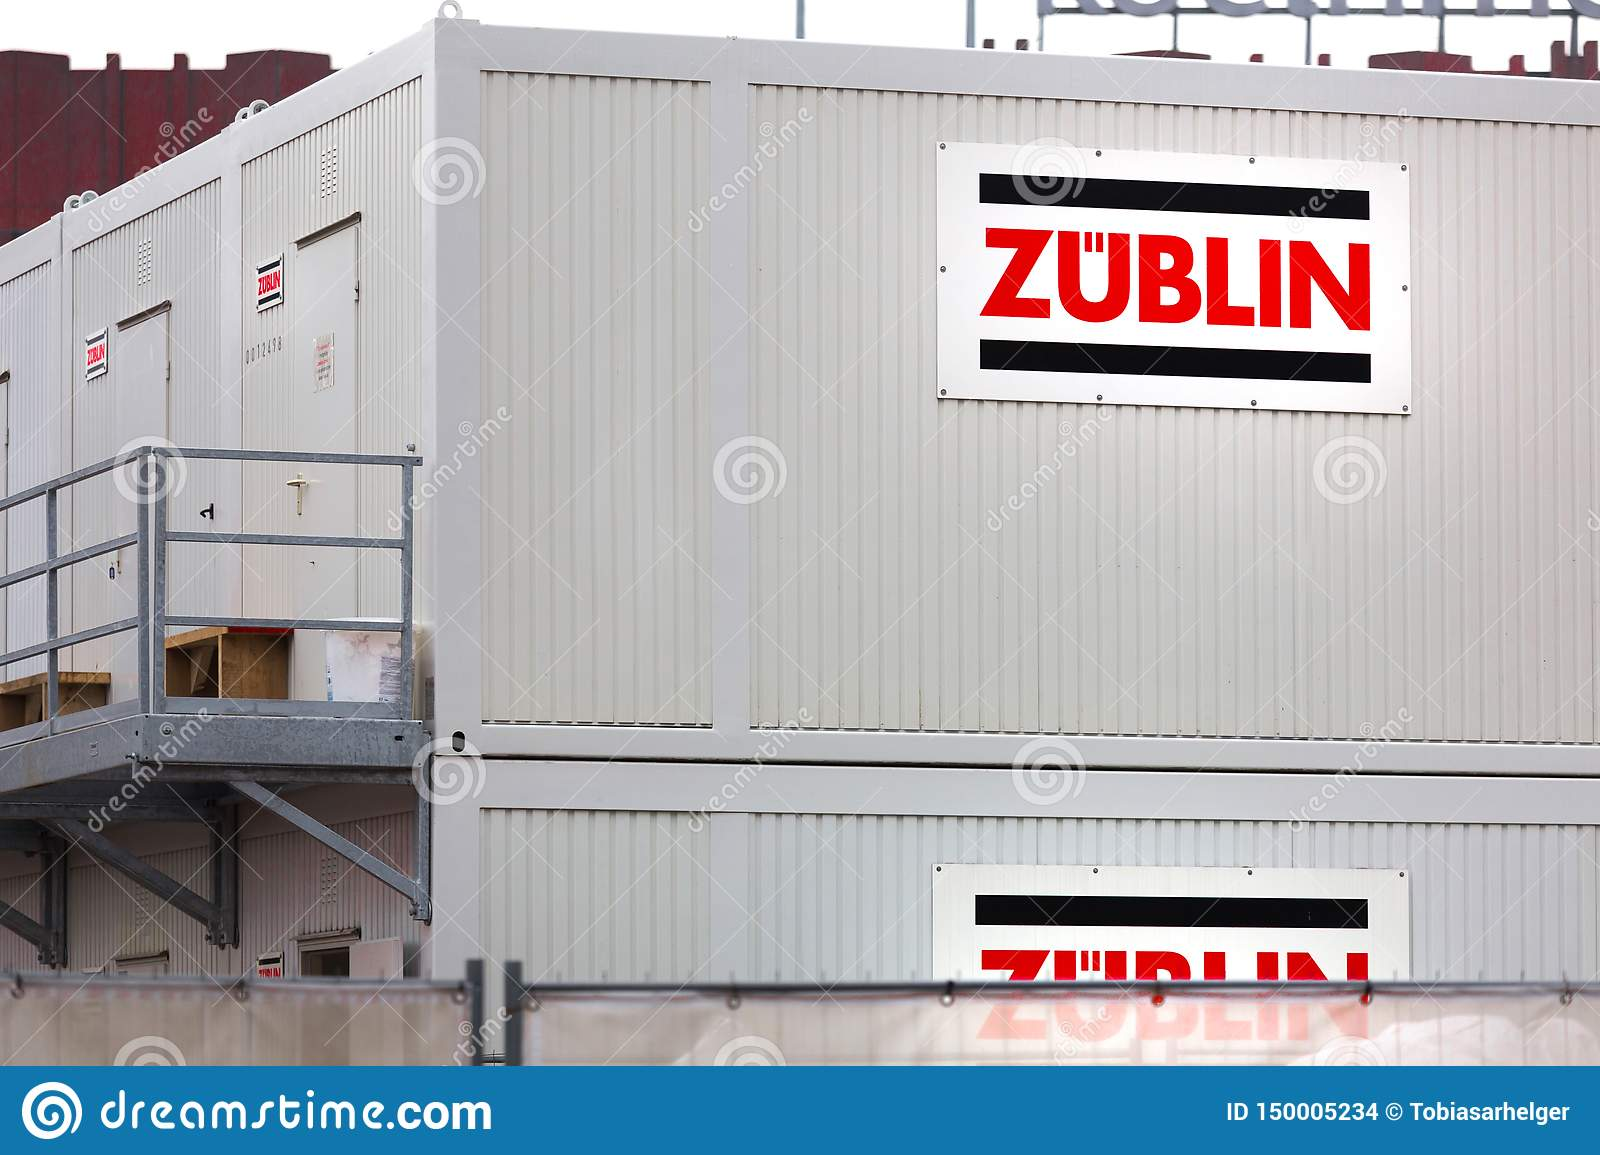 Züblin container sign in cologne germany